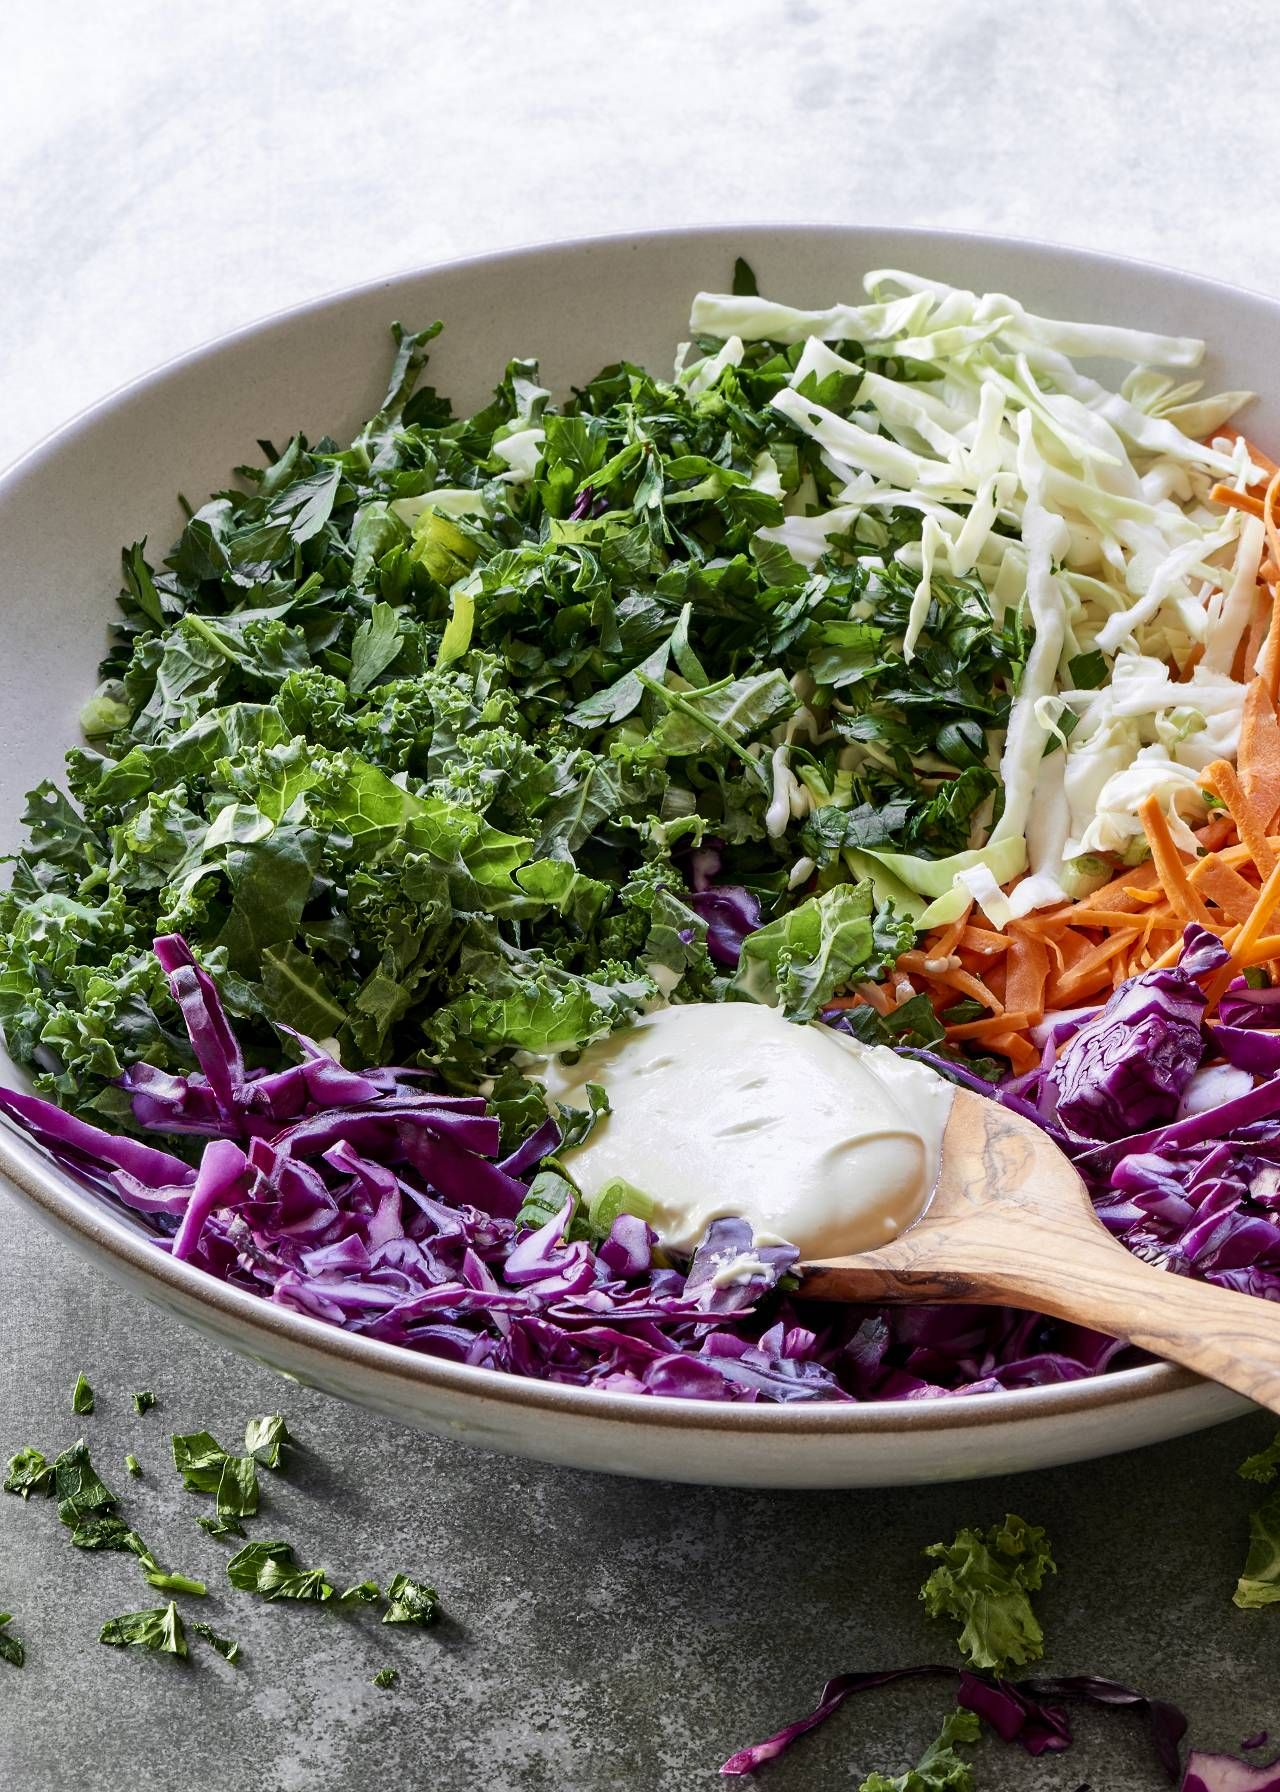 Cabbage And Kale Slaw The Blender Girl Kale Slaw Side Dish Recipes Healthy Gluten Free Sides Dishes